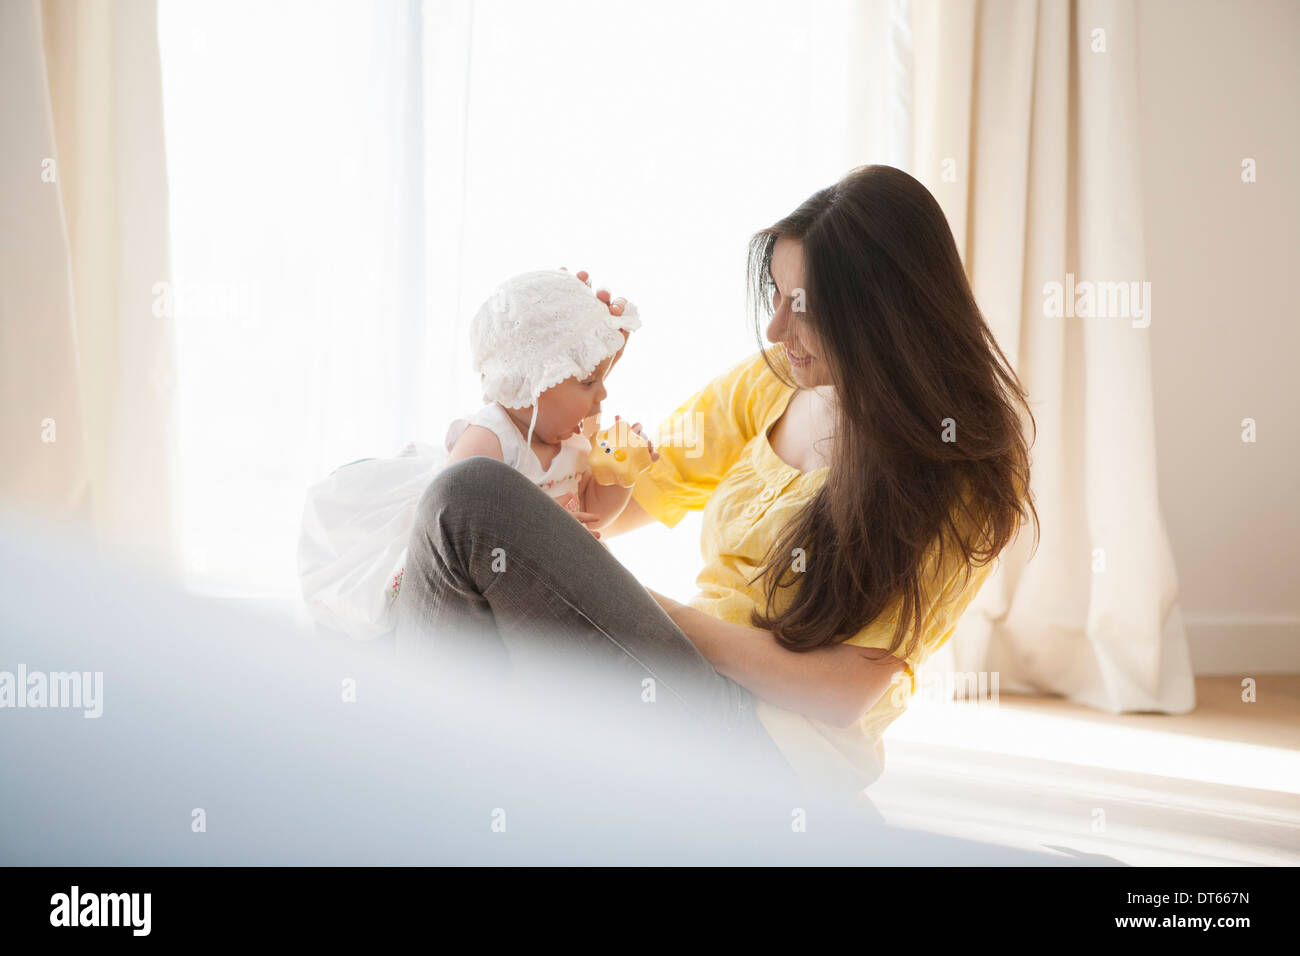 Mother playing with baby - Stock Image